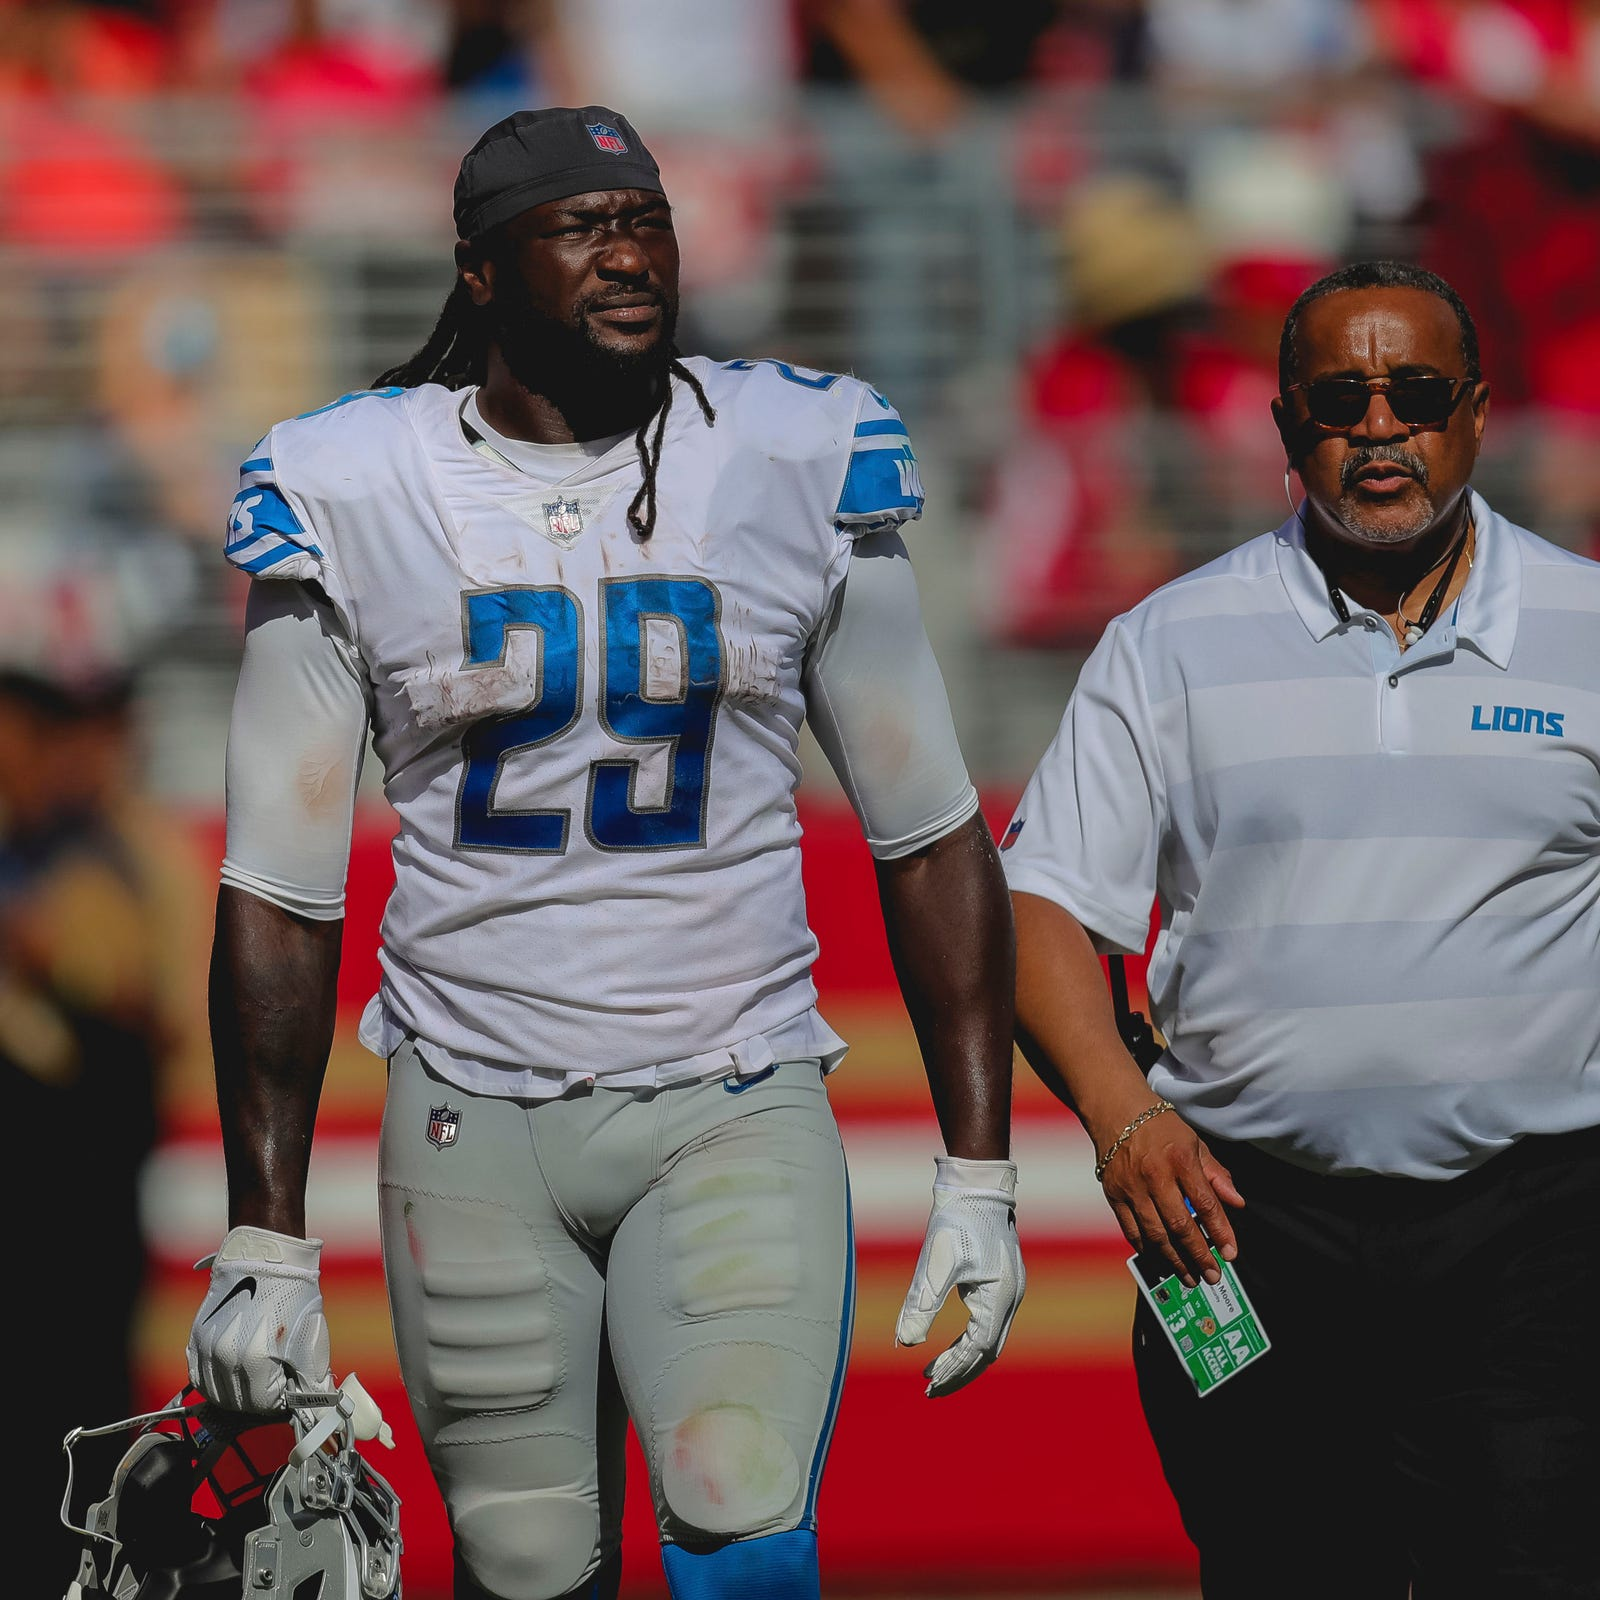 Detroit Lions' LeGarrette Blount expects NFL fine for shove, ejection